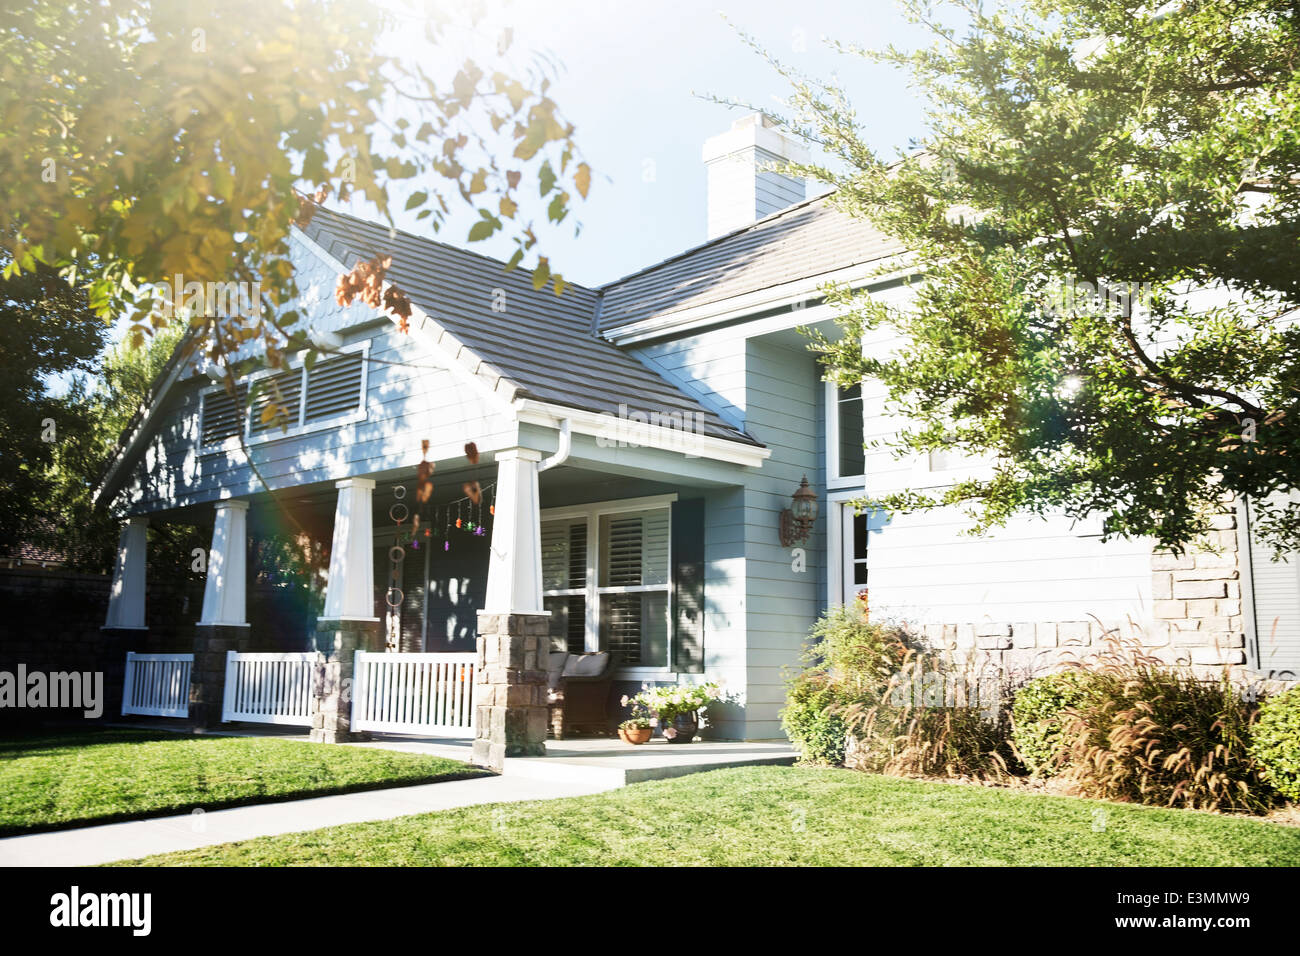 Sunny house and yard - Stock Image